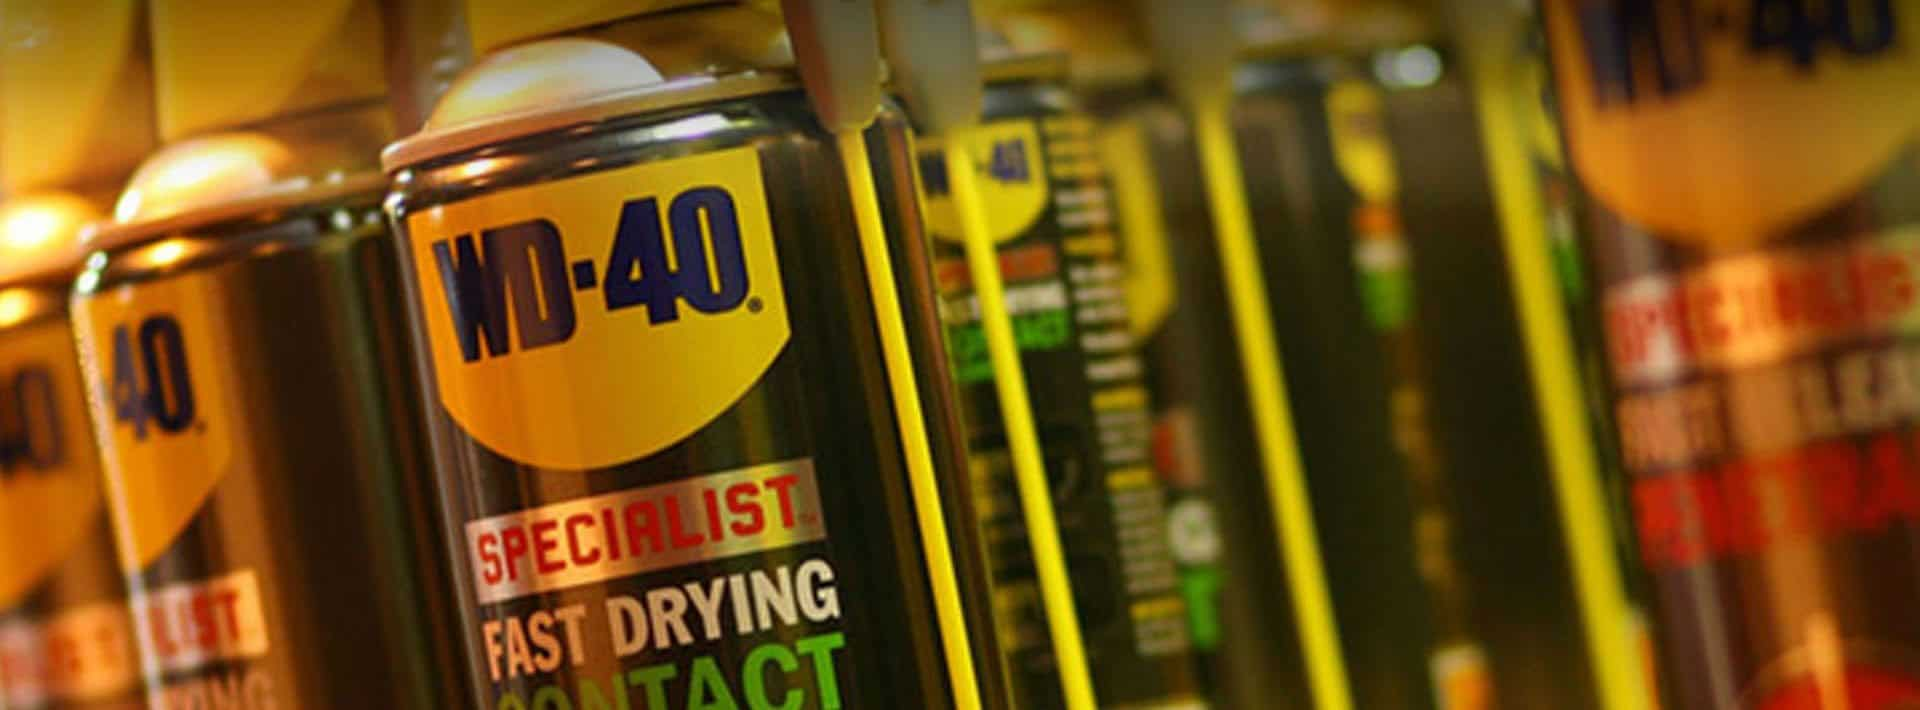 WD-40-Specialist